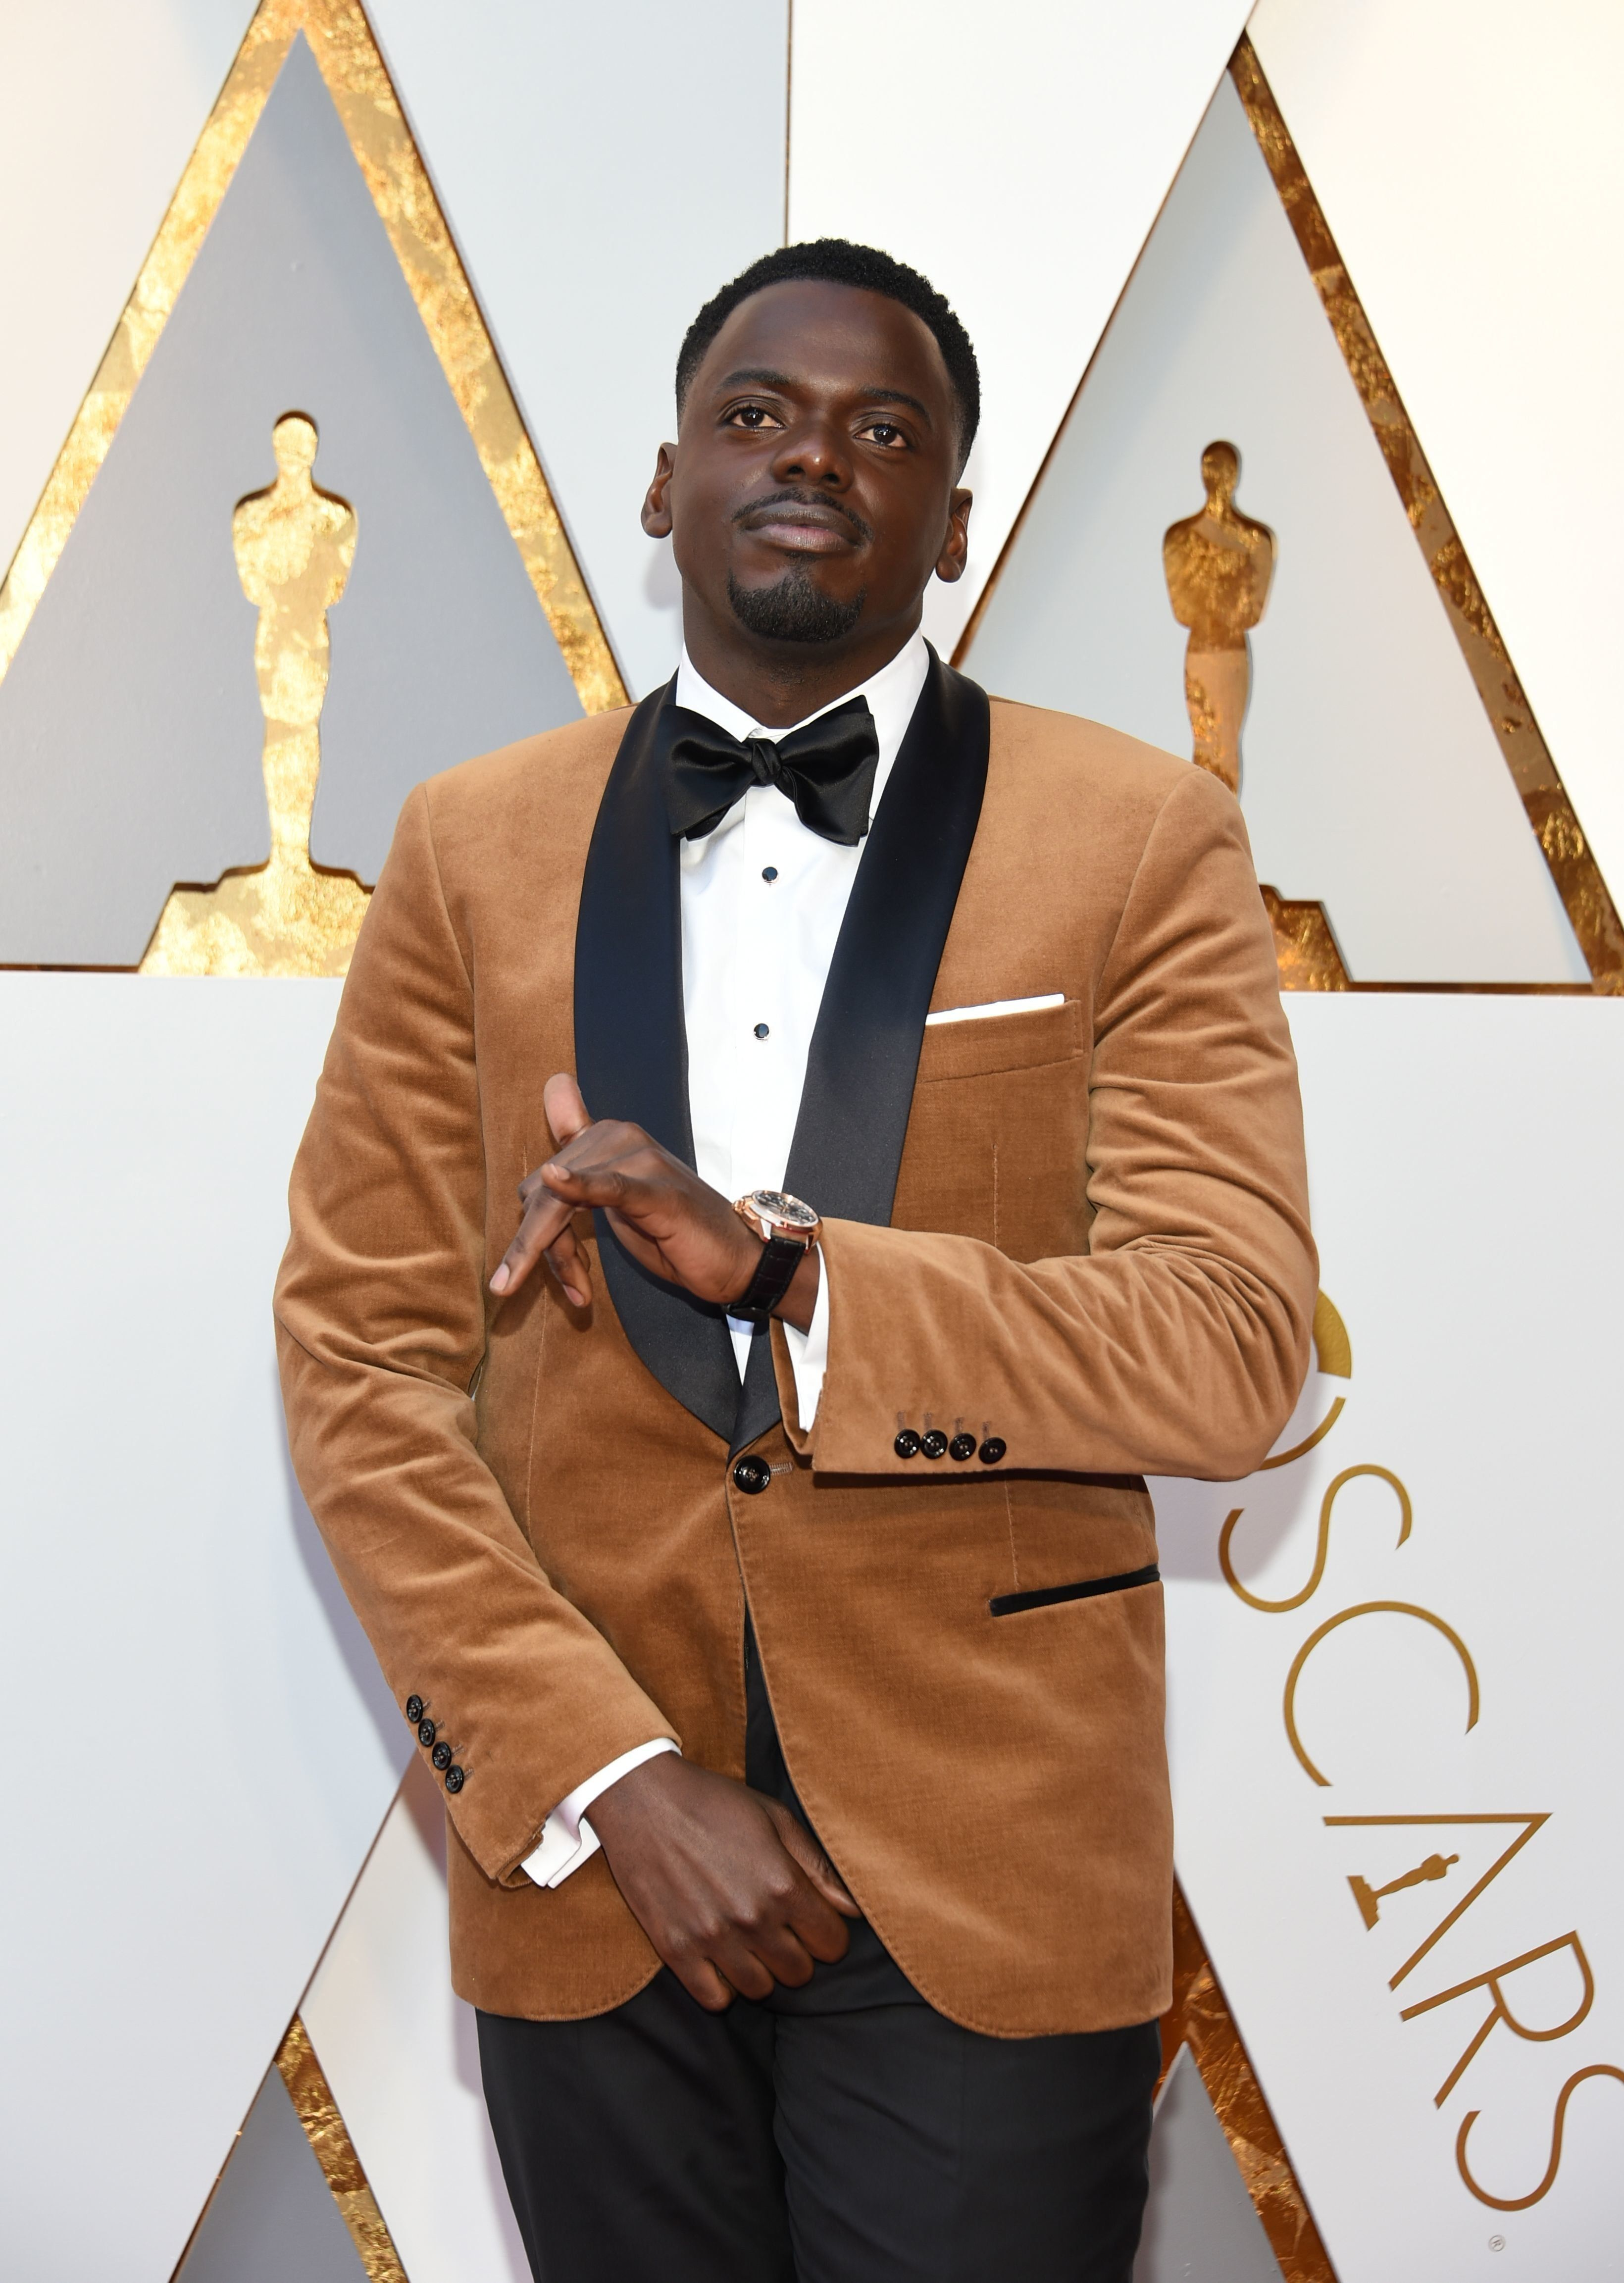 Daniel Kaluuya Expertly Handles 'Get Out' 'Box-Ticking' Question On Oscars Red